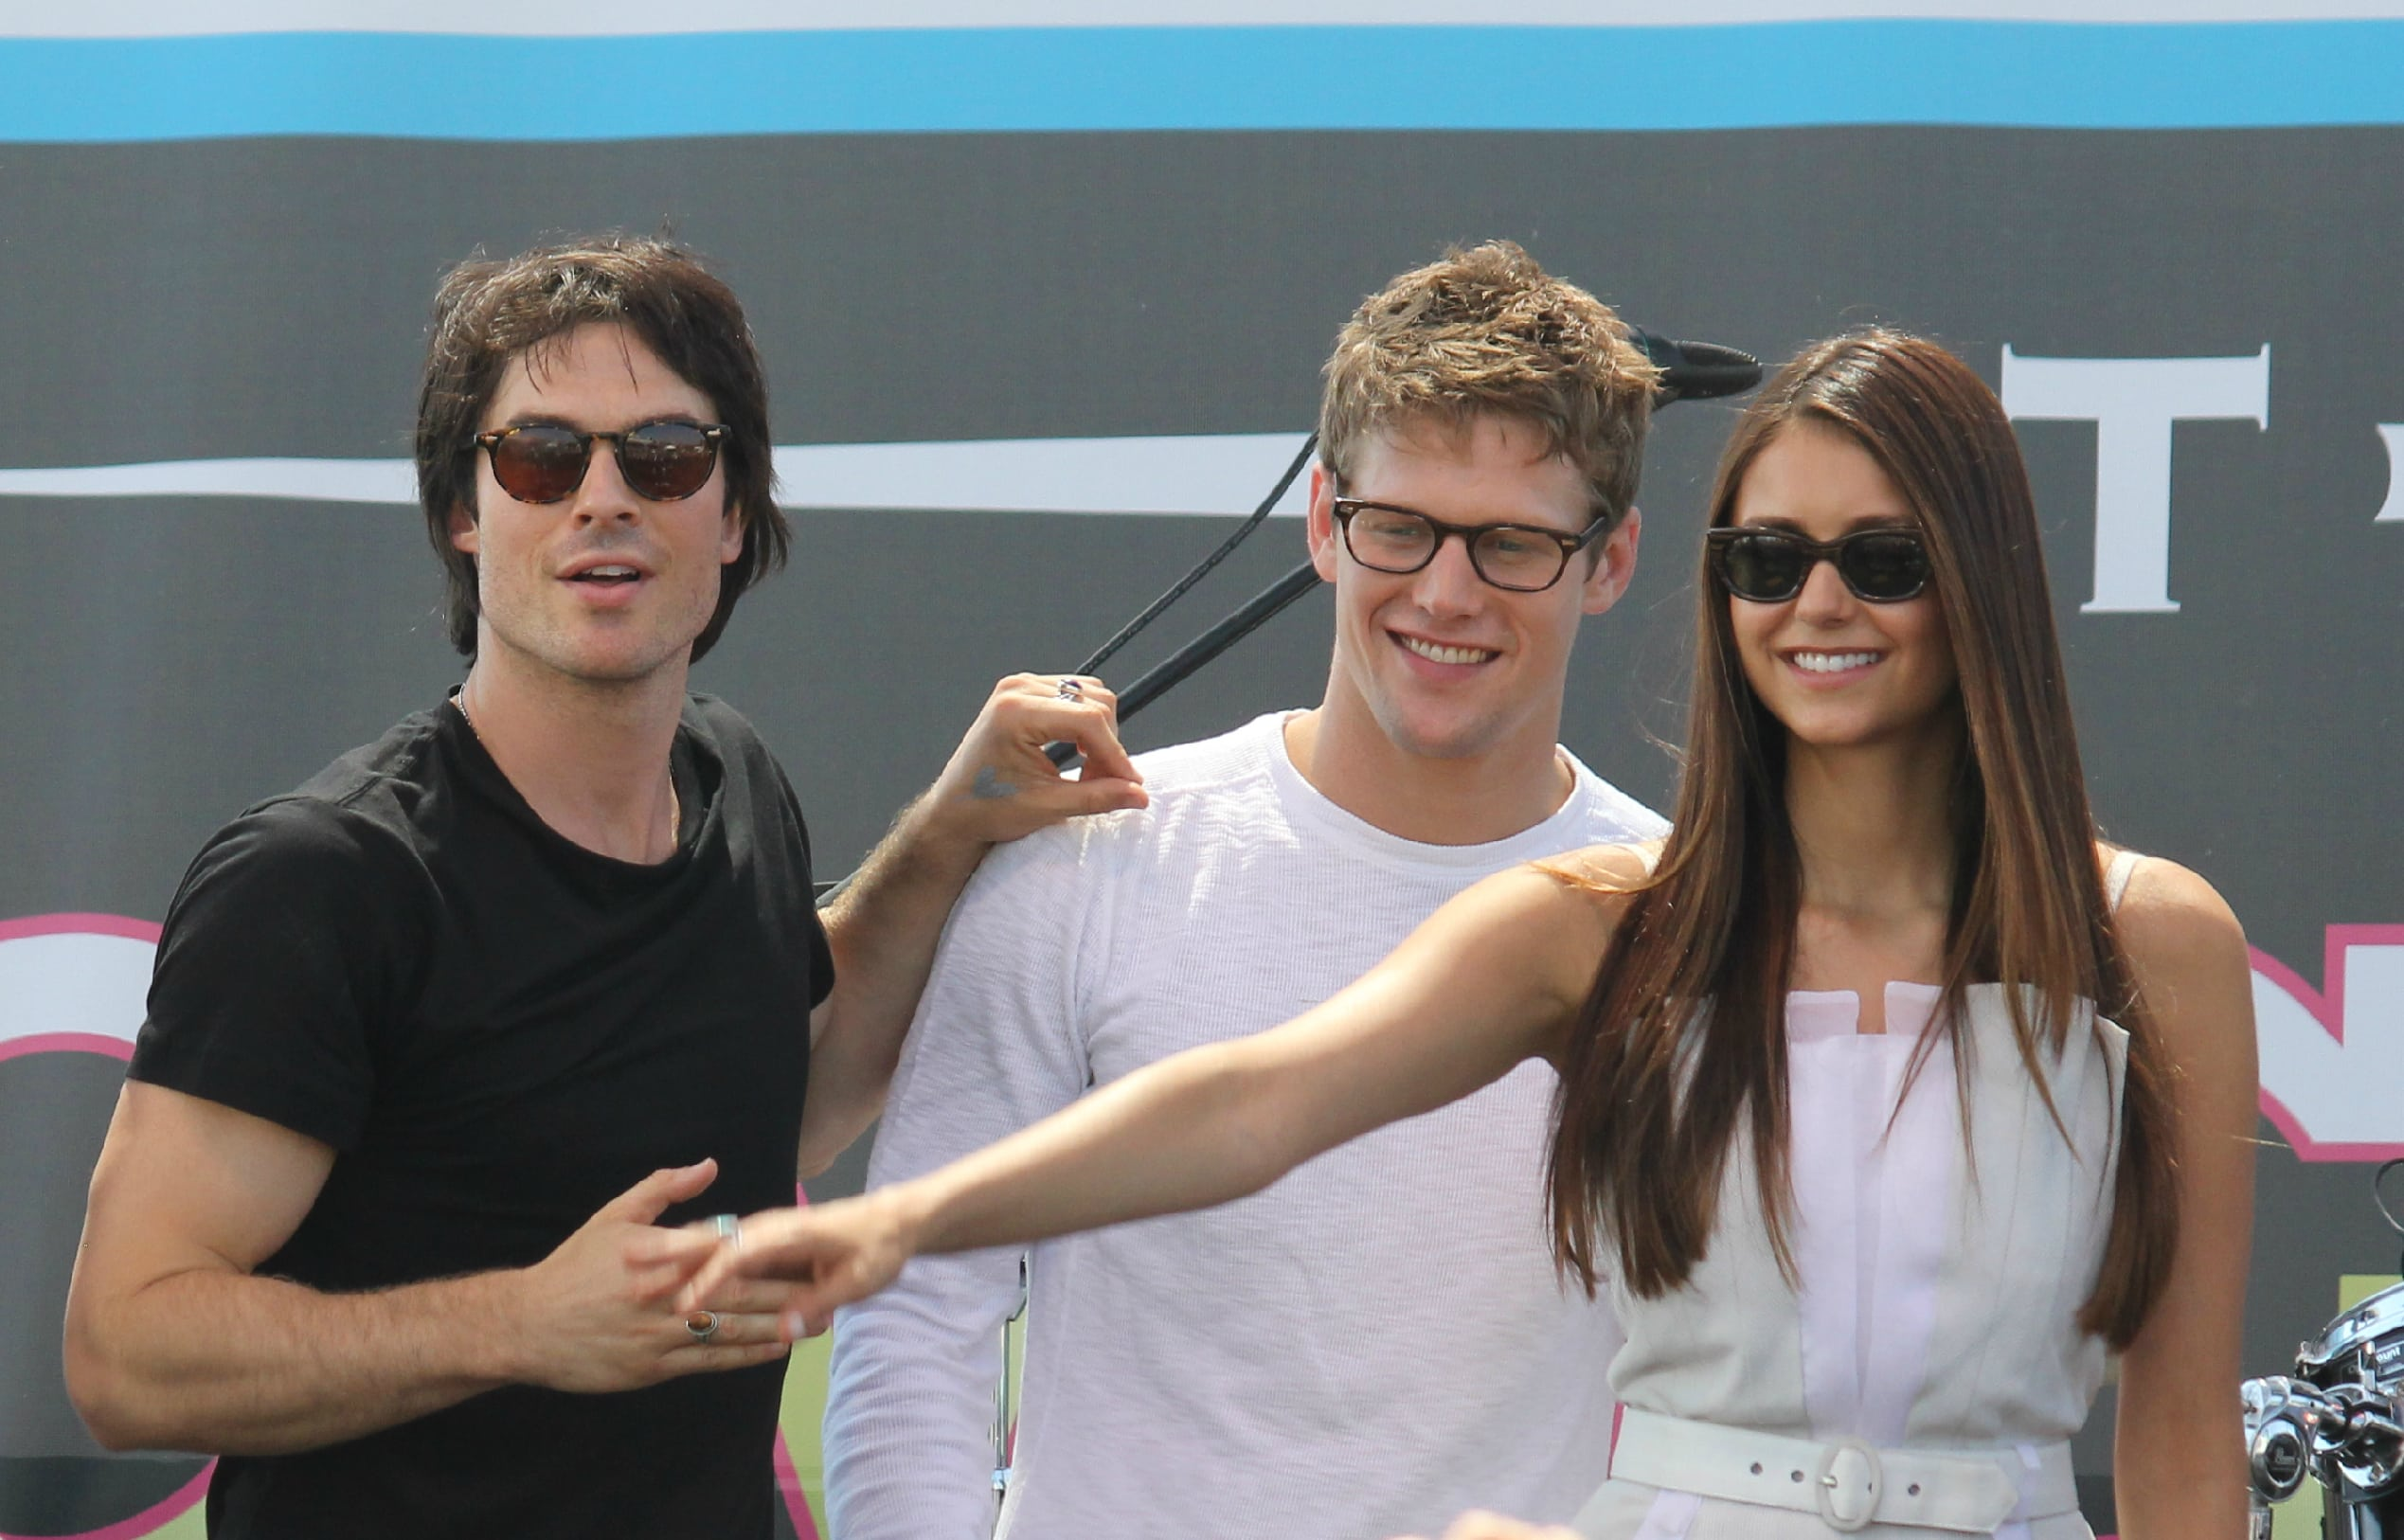 Zach roerig and nina dobrev dating